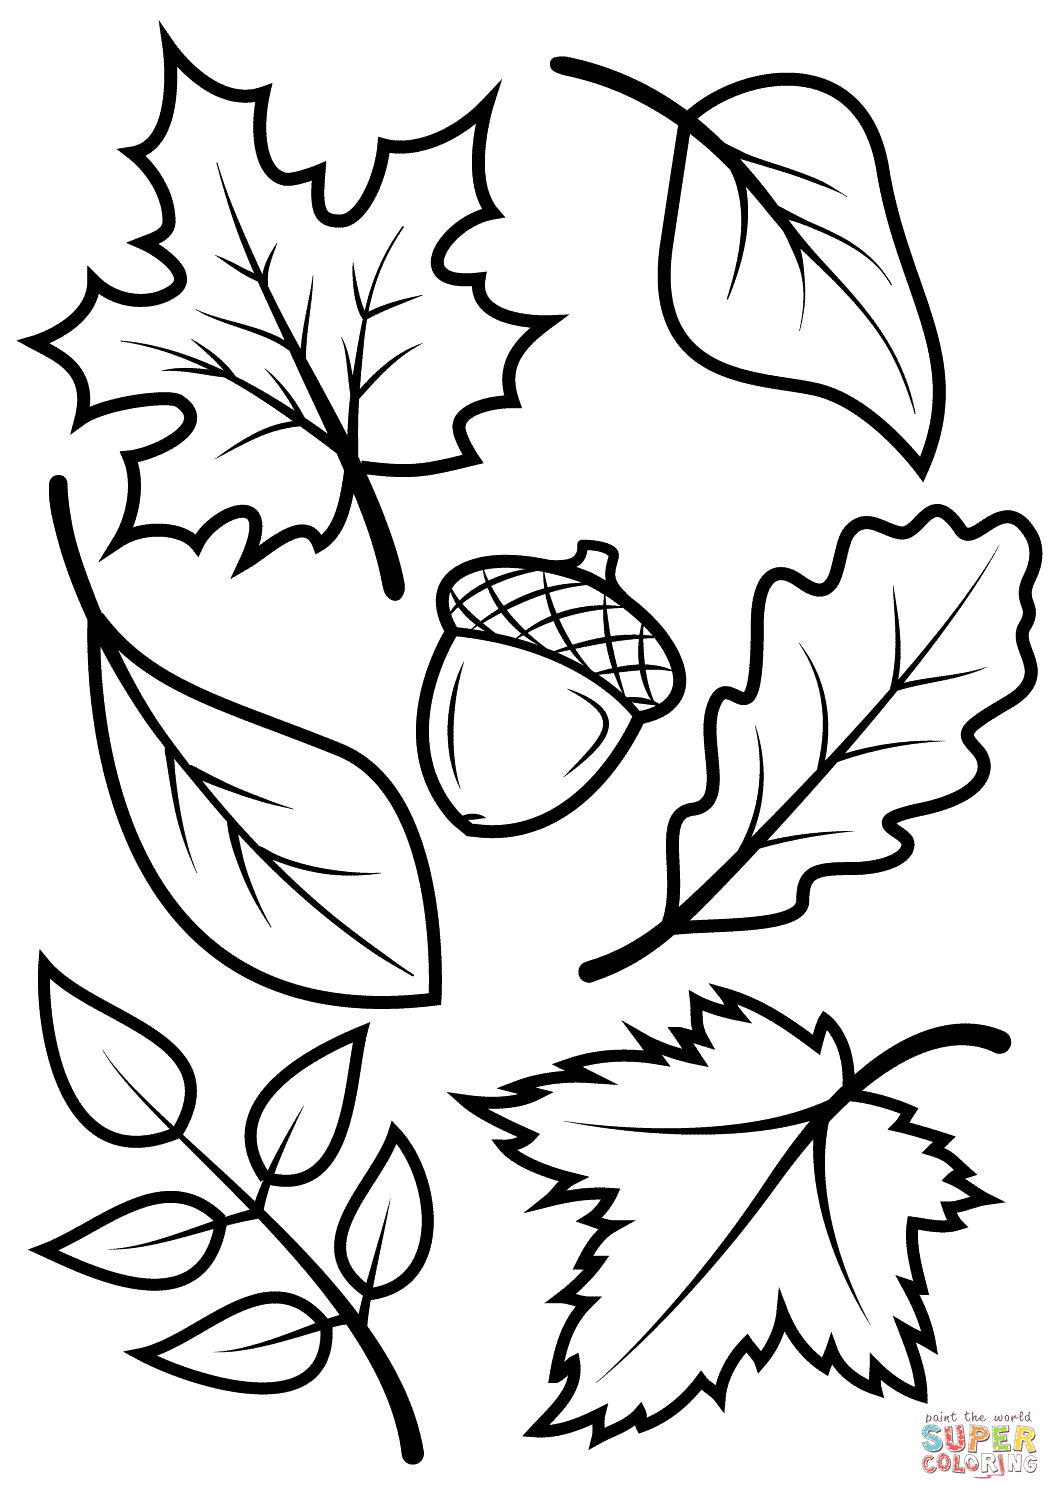 Fall Leaves And Acorn Coloring Page   Free Printable Coloring Pages - Free Printable Fall Leaves Coloring Pages